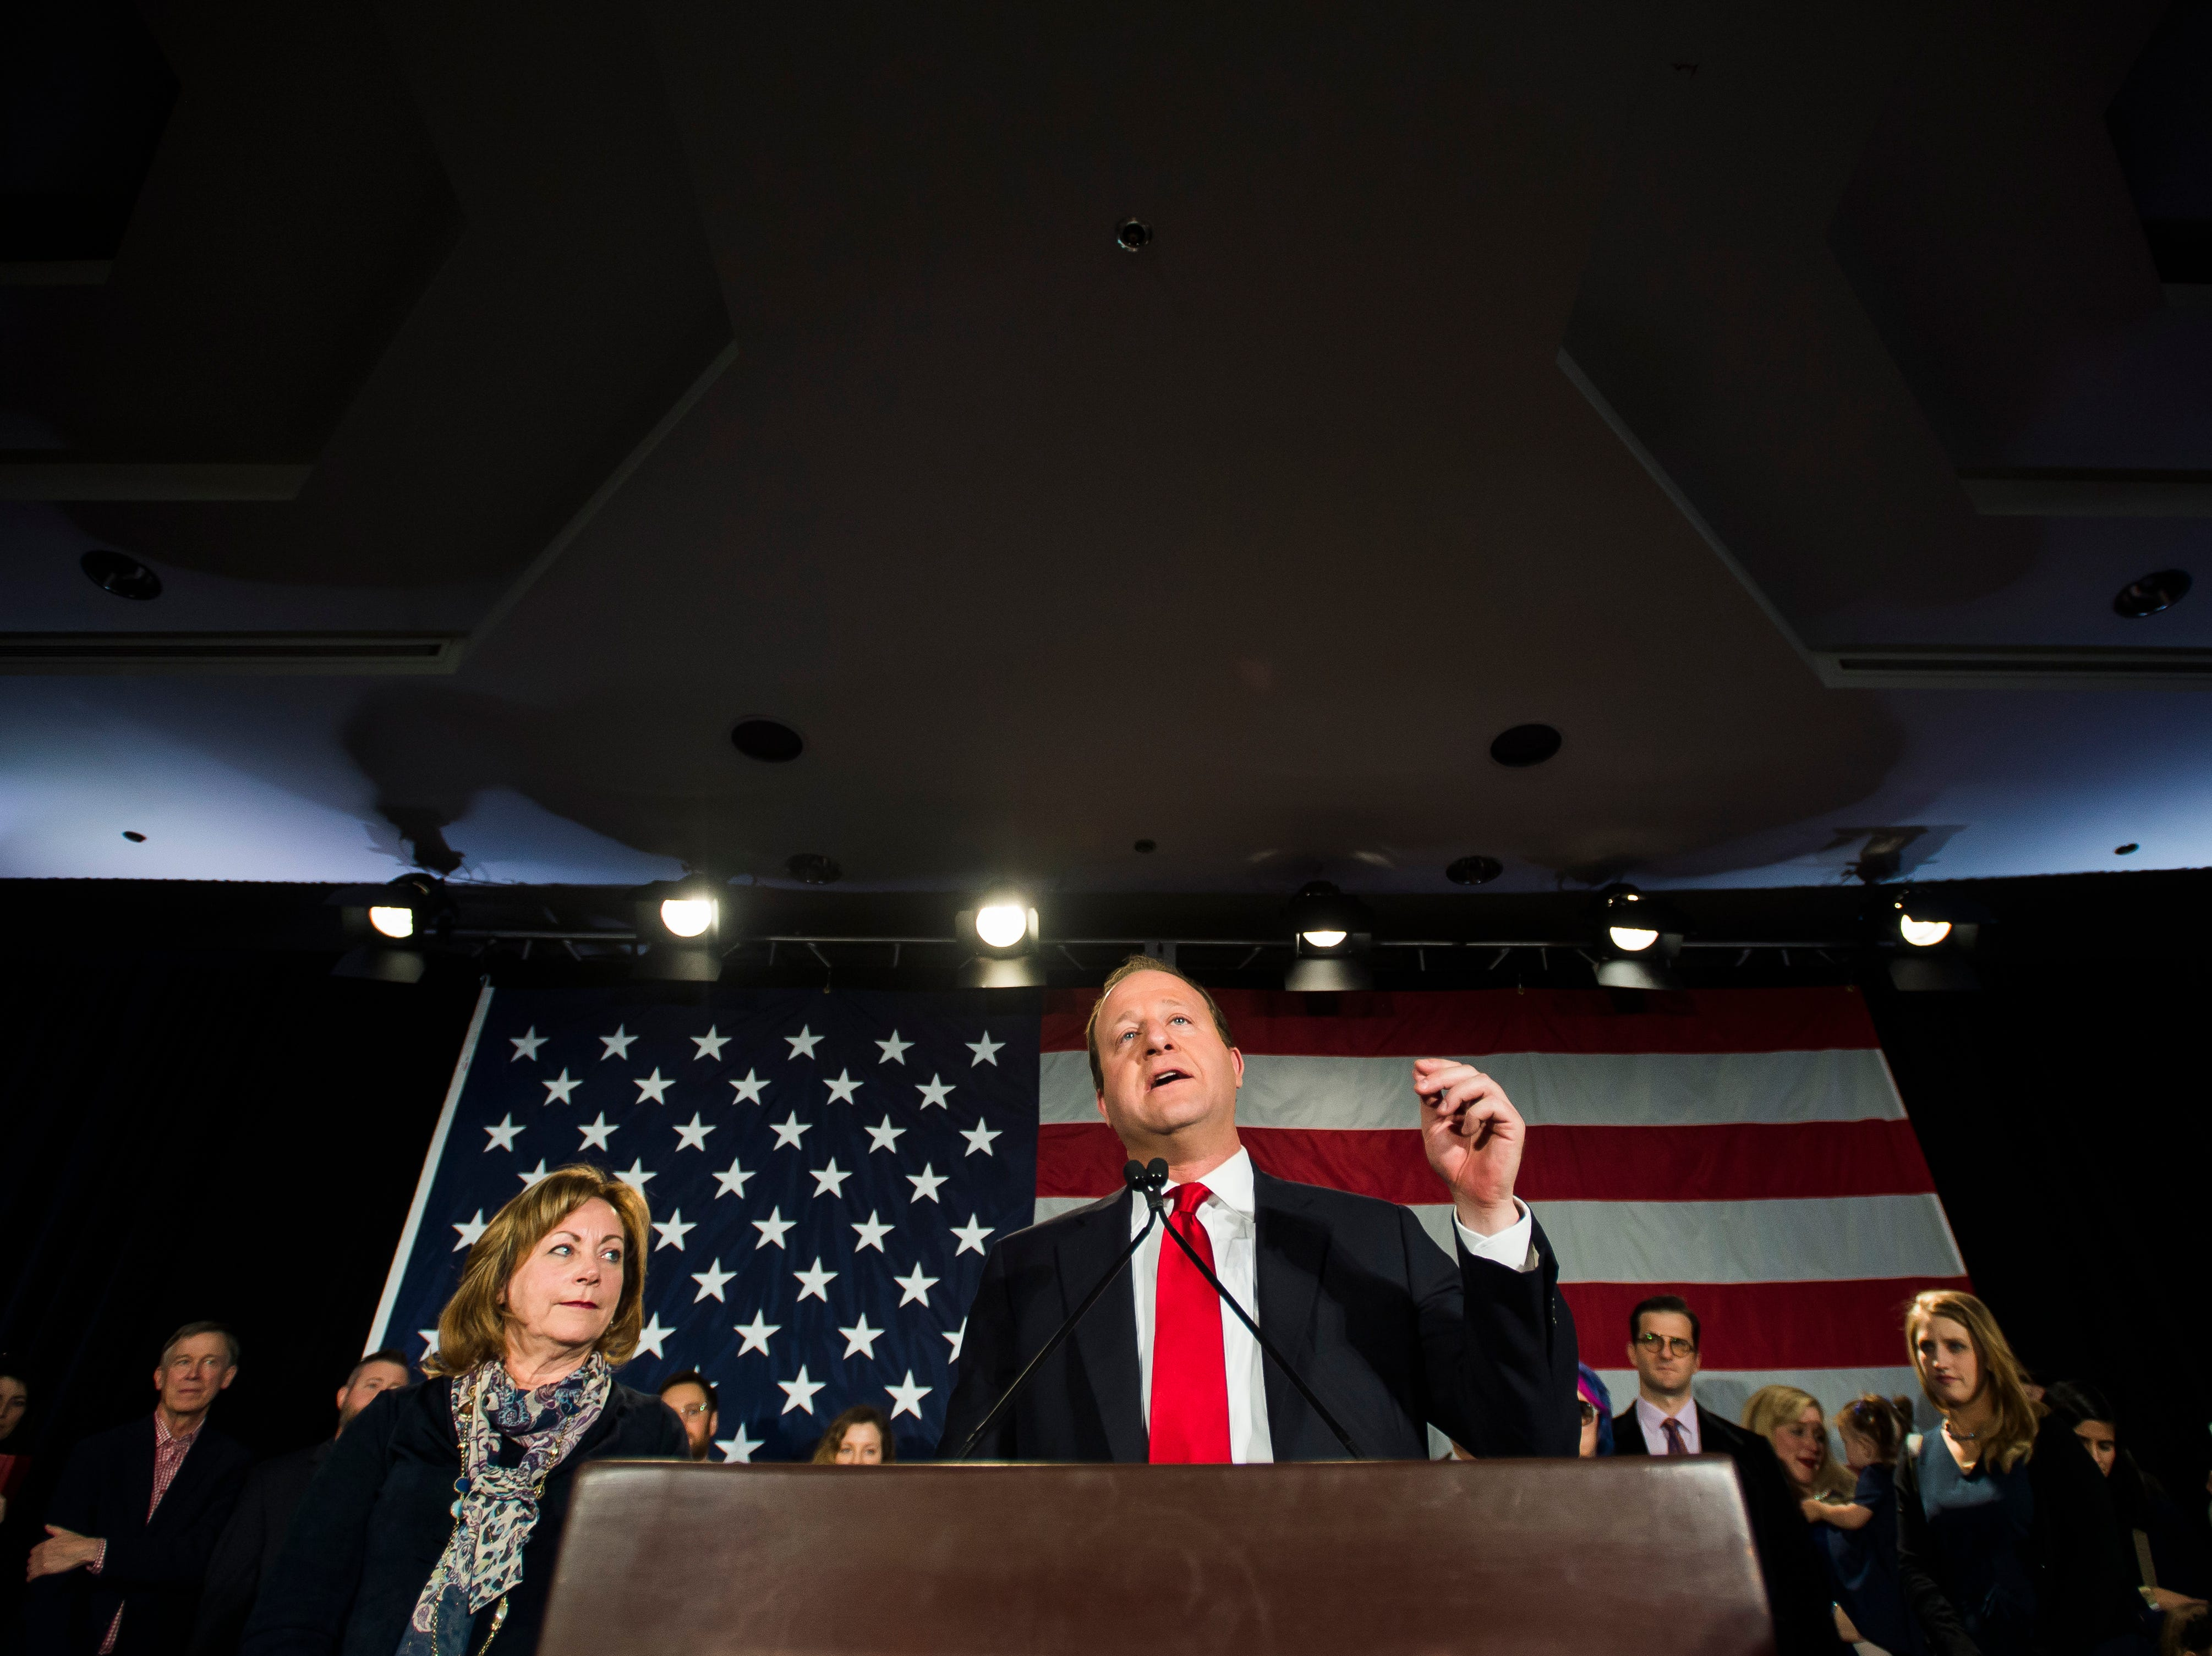 Democratic candidate for Colorado governor Jared Polis speaks to a gathered audience after Republican candidate Walker Stapleton conceded the race on Tuesday, Nov. 6, 2018, at the Westin Denver Downtown hotel in Denver, Colo.